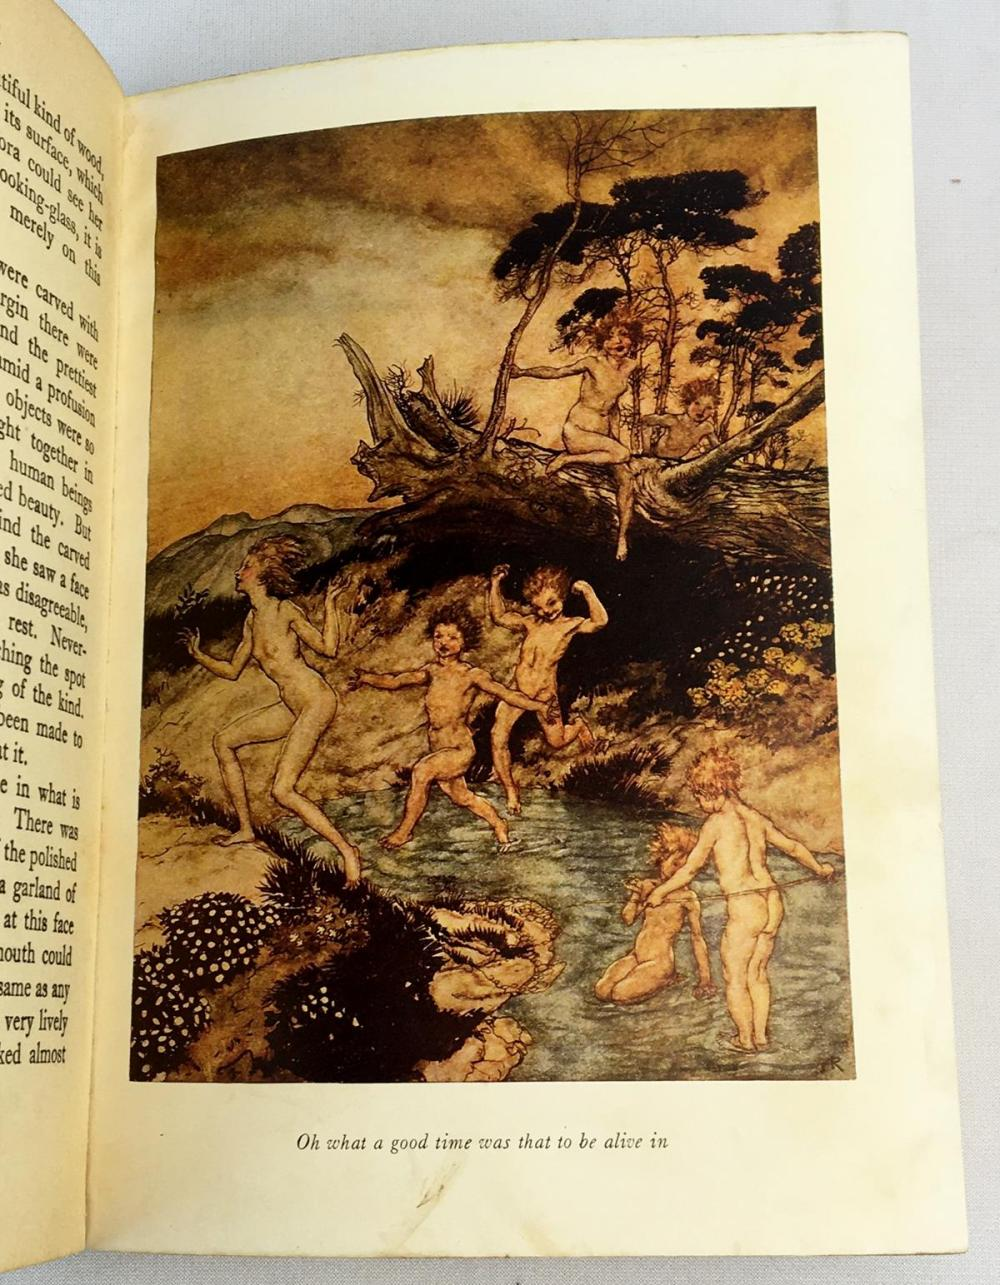 Hawthorne's Wonder Book by Nathaniel Hawthorne ILLUSTRATED by Arthur Rackham c. 1940